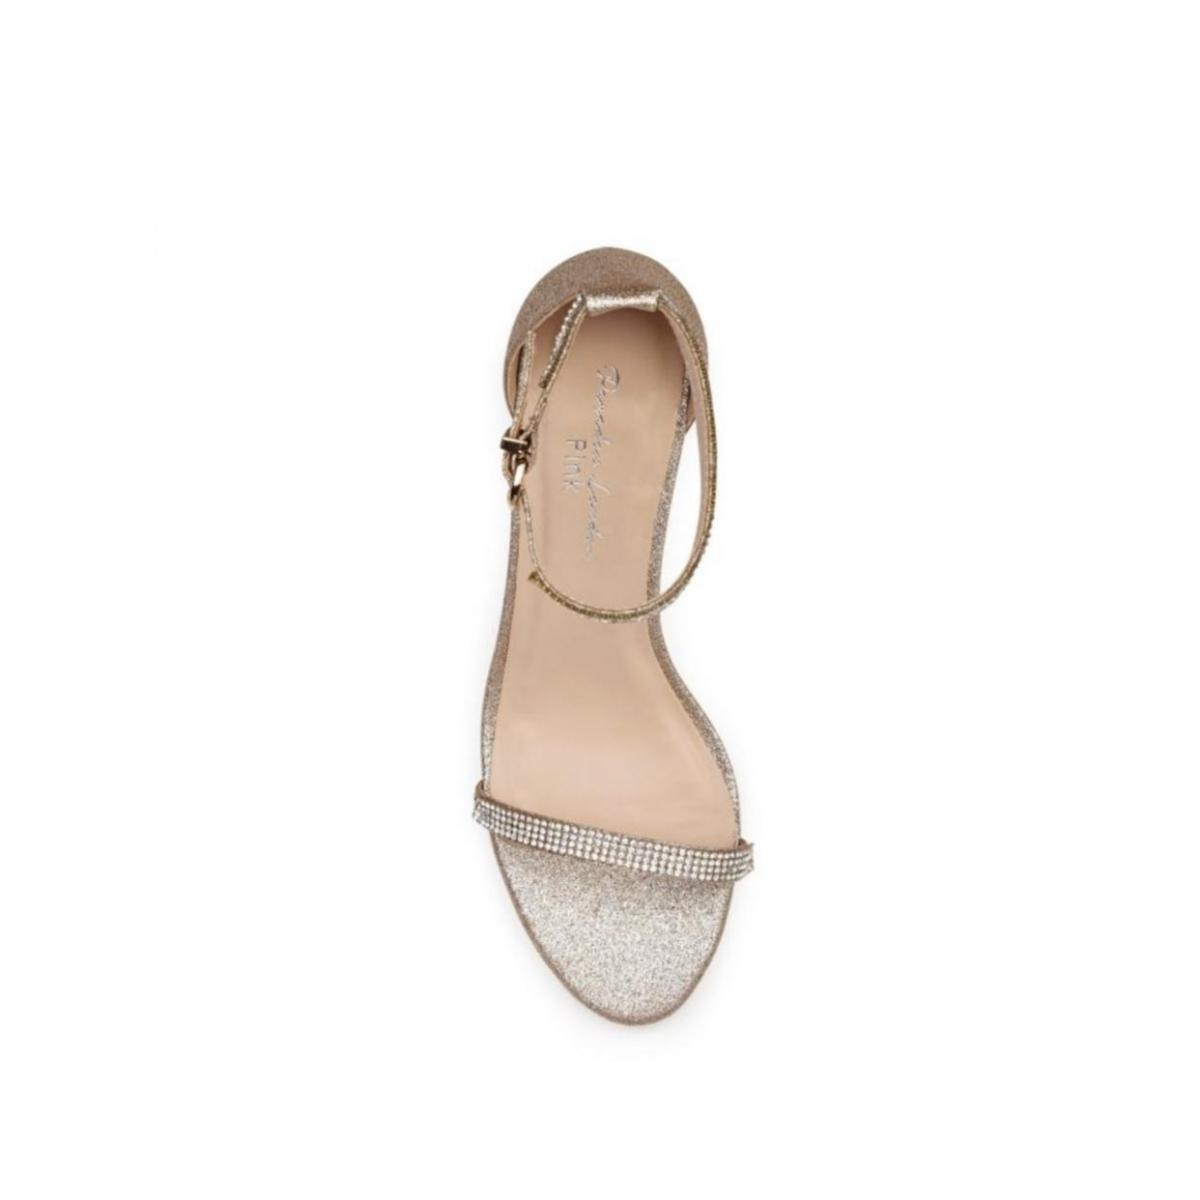 Pink Paradox Star - Nude Shimmer High Heel Barely There Sandal 3